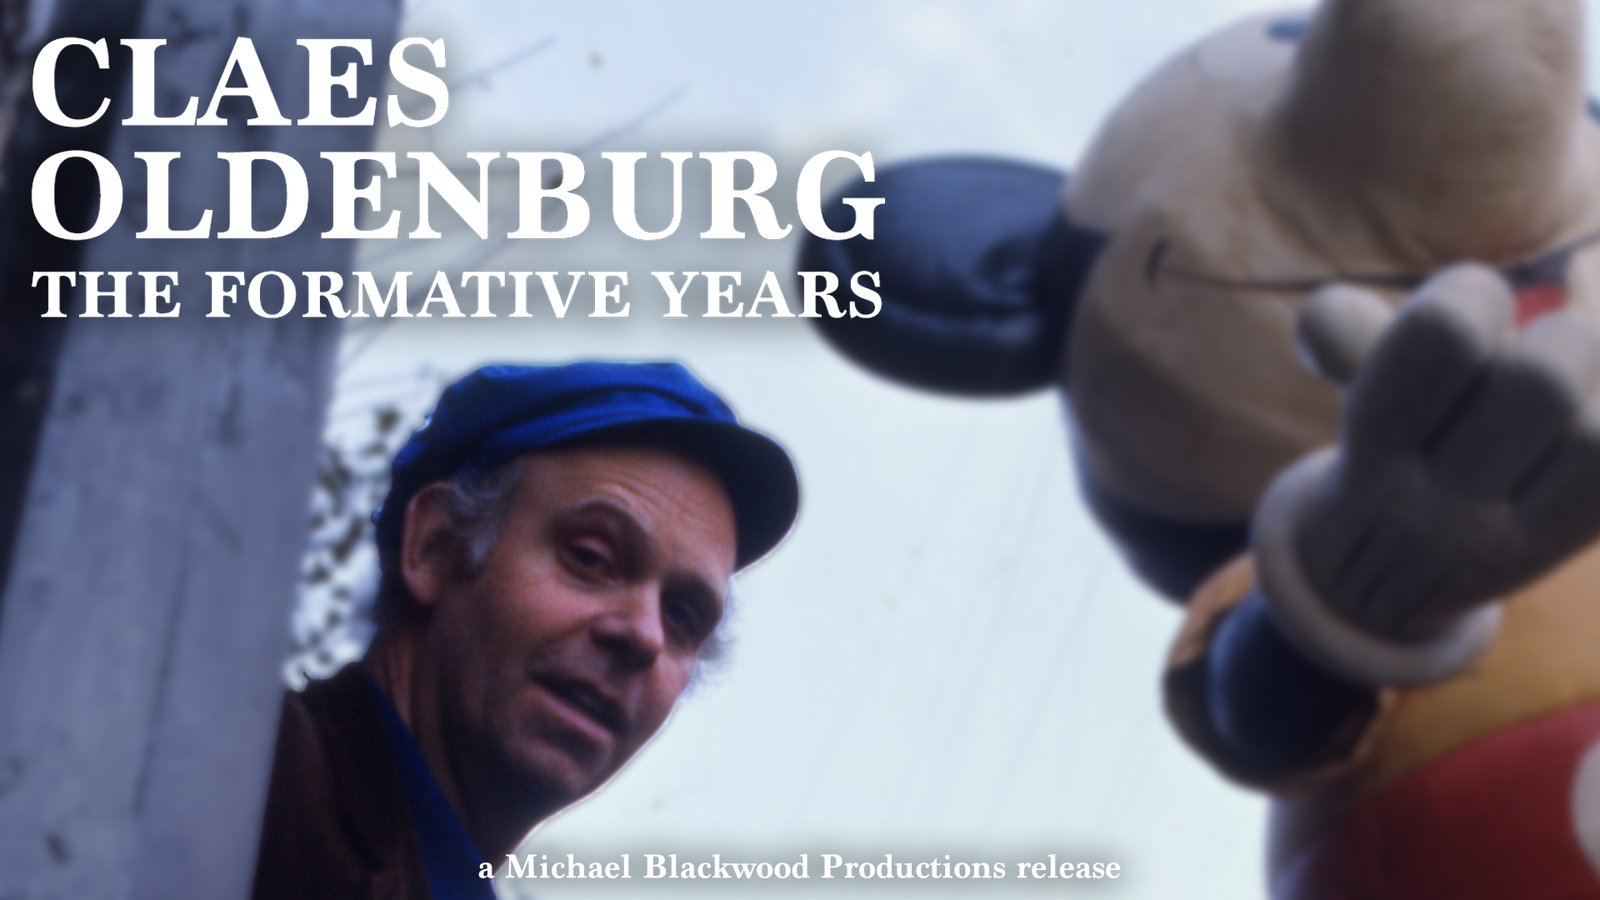 Claes Oldenburg: The Formative Years - The Work of a Pop Artist